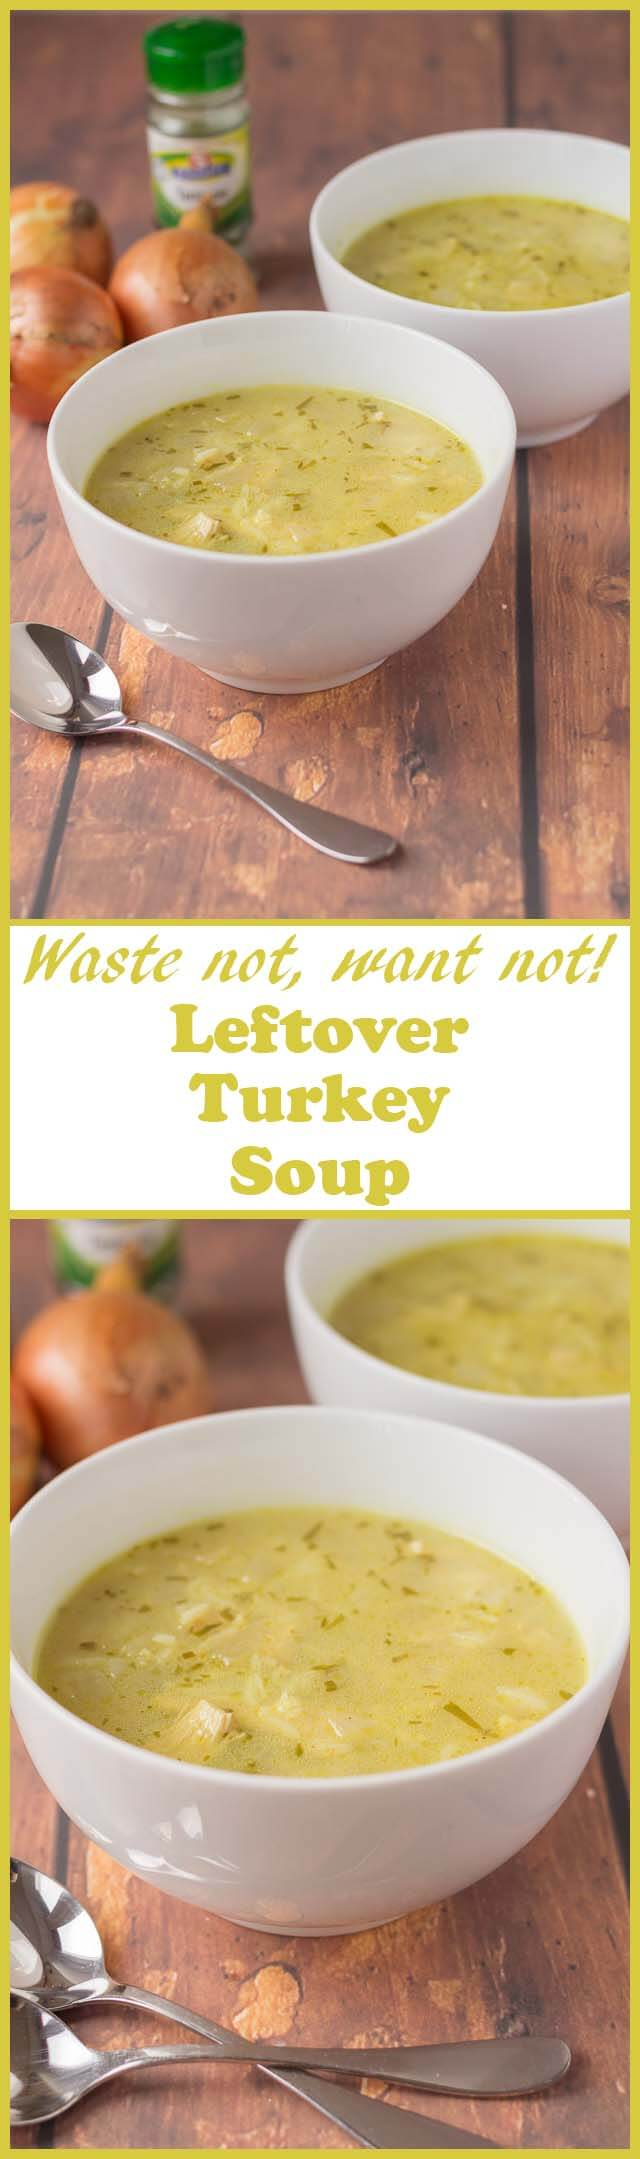 Leftover turkey soup is the ultimate recipe to use up any of that remaining turkey from Thanksgiving or Christmas. This delicious healthy recipe is literally bursting with flavour.